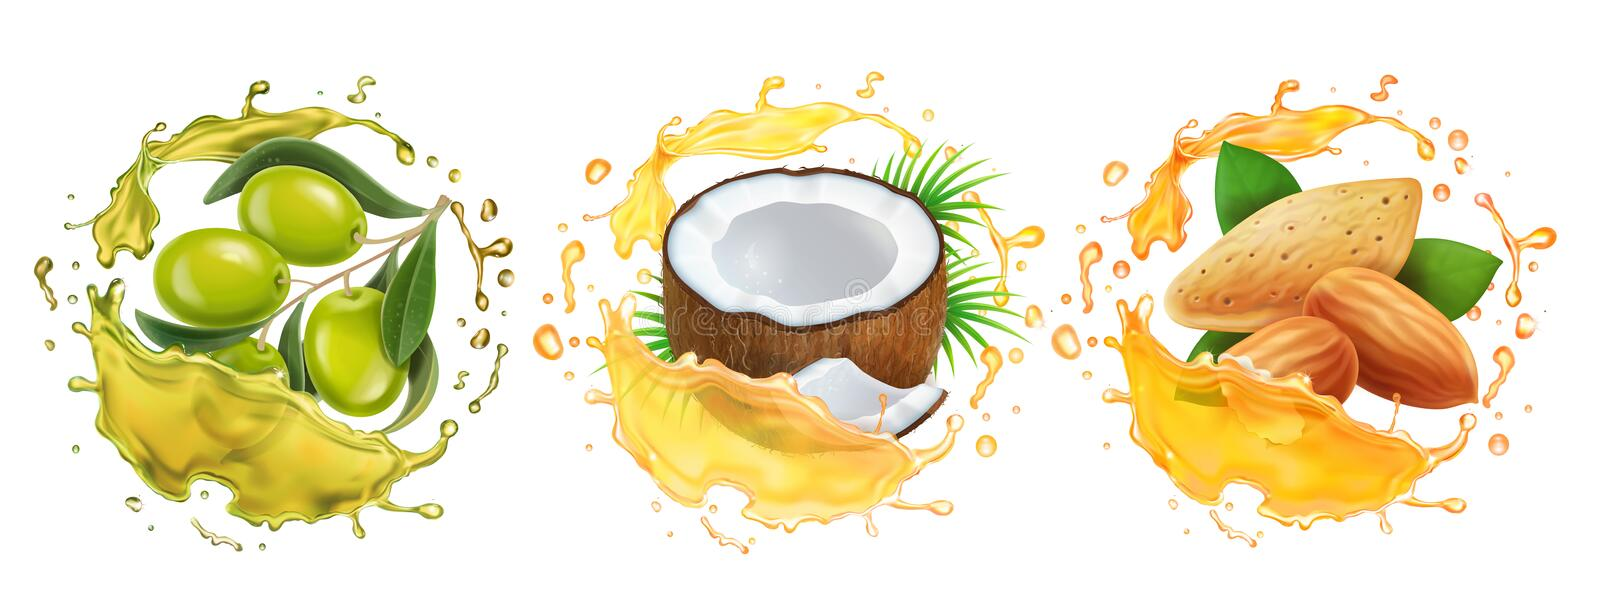 Oils set. Coconut, olive and almond oil splashes. Realistic collection stock illustration